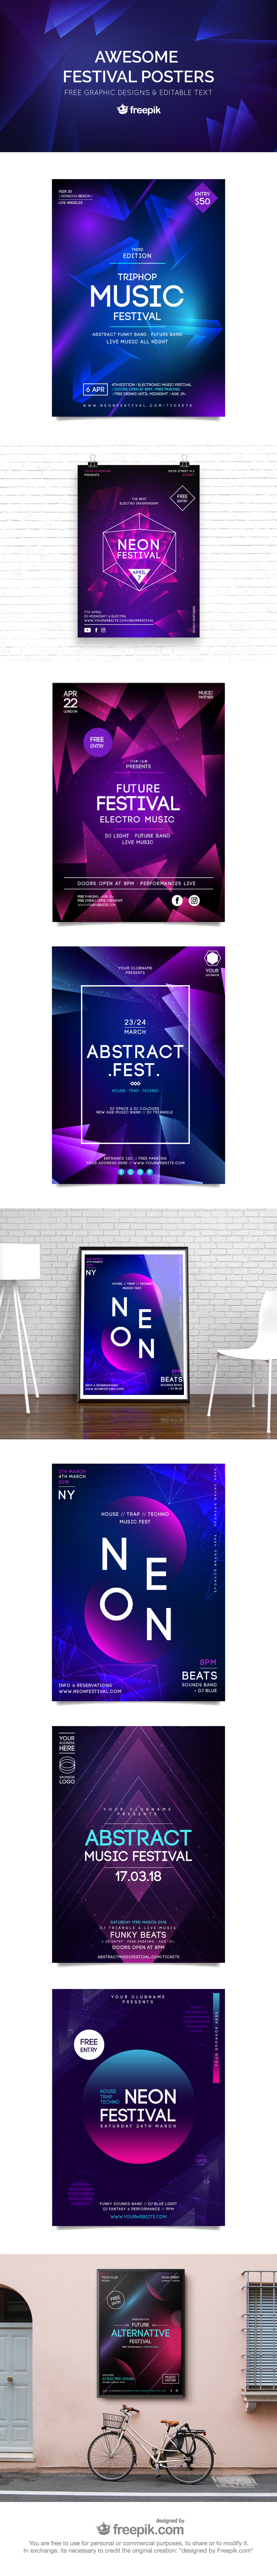 Free Festival Poster Templates